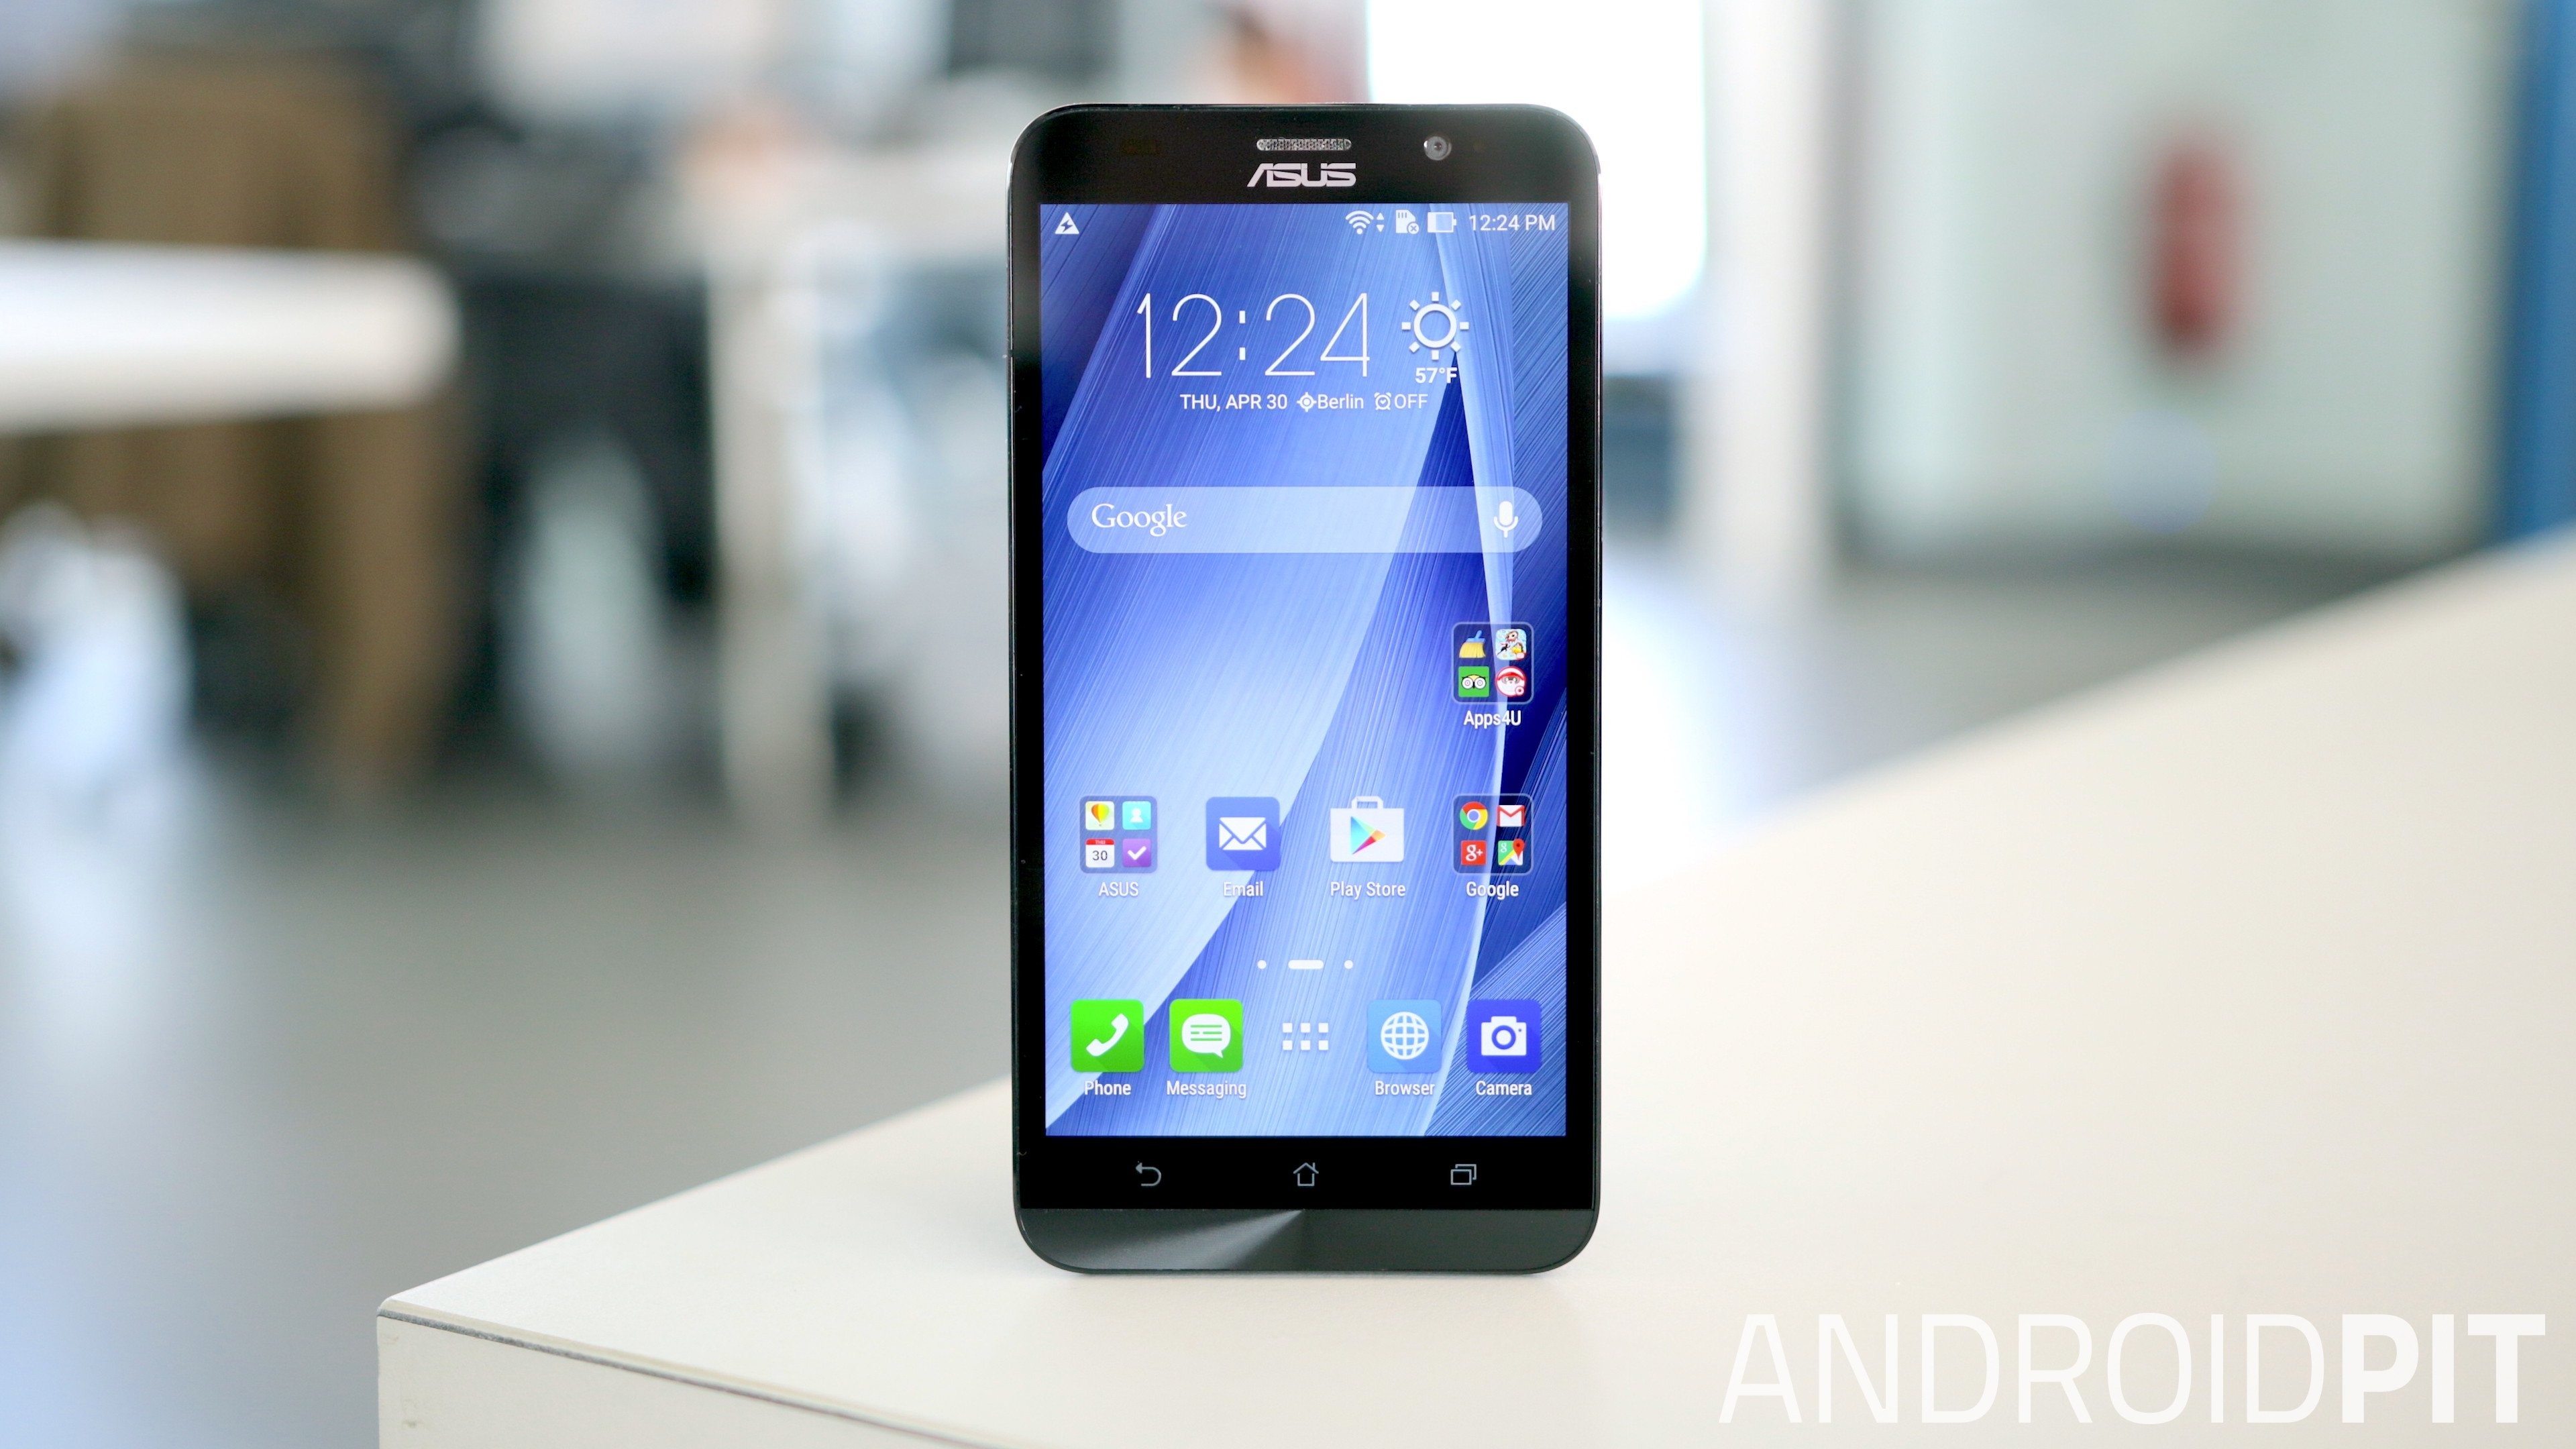 asus zenfone 2 review rambunctious hardware reviews androidpit. Black Bedroom Furniture Sets. Home Design Ideas